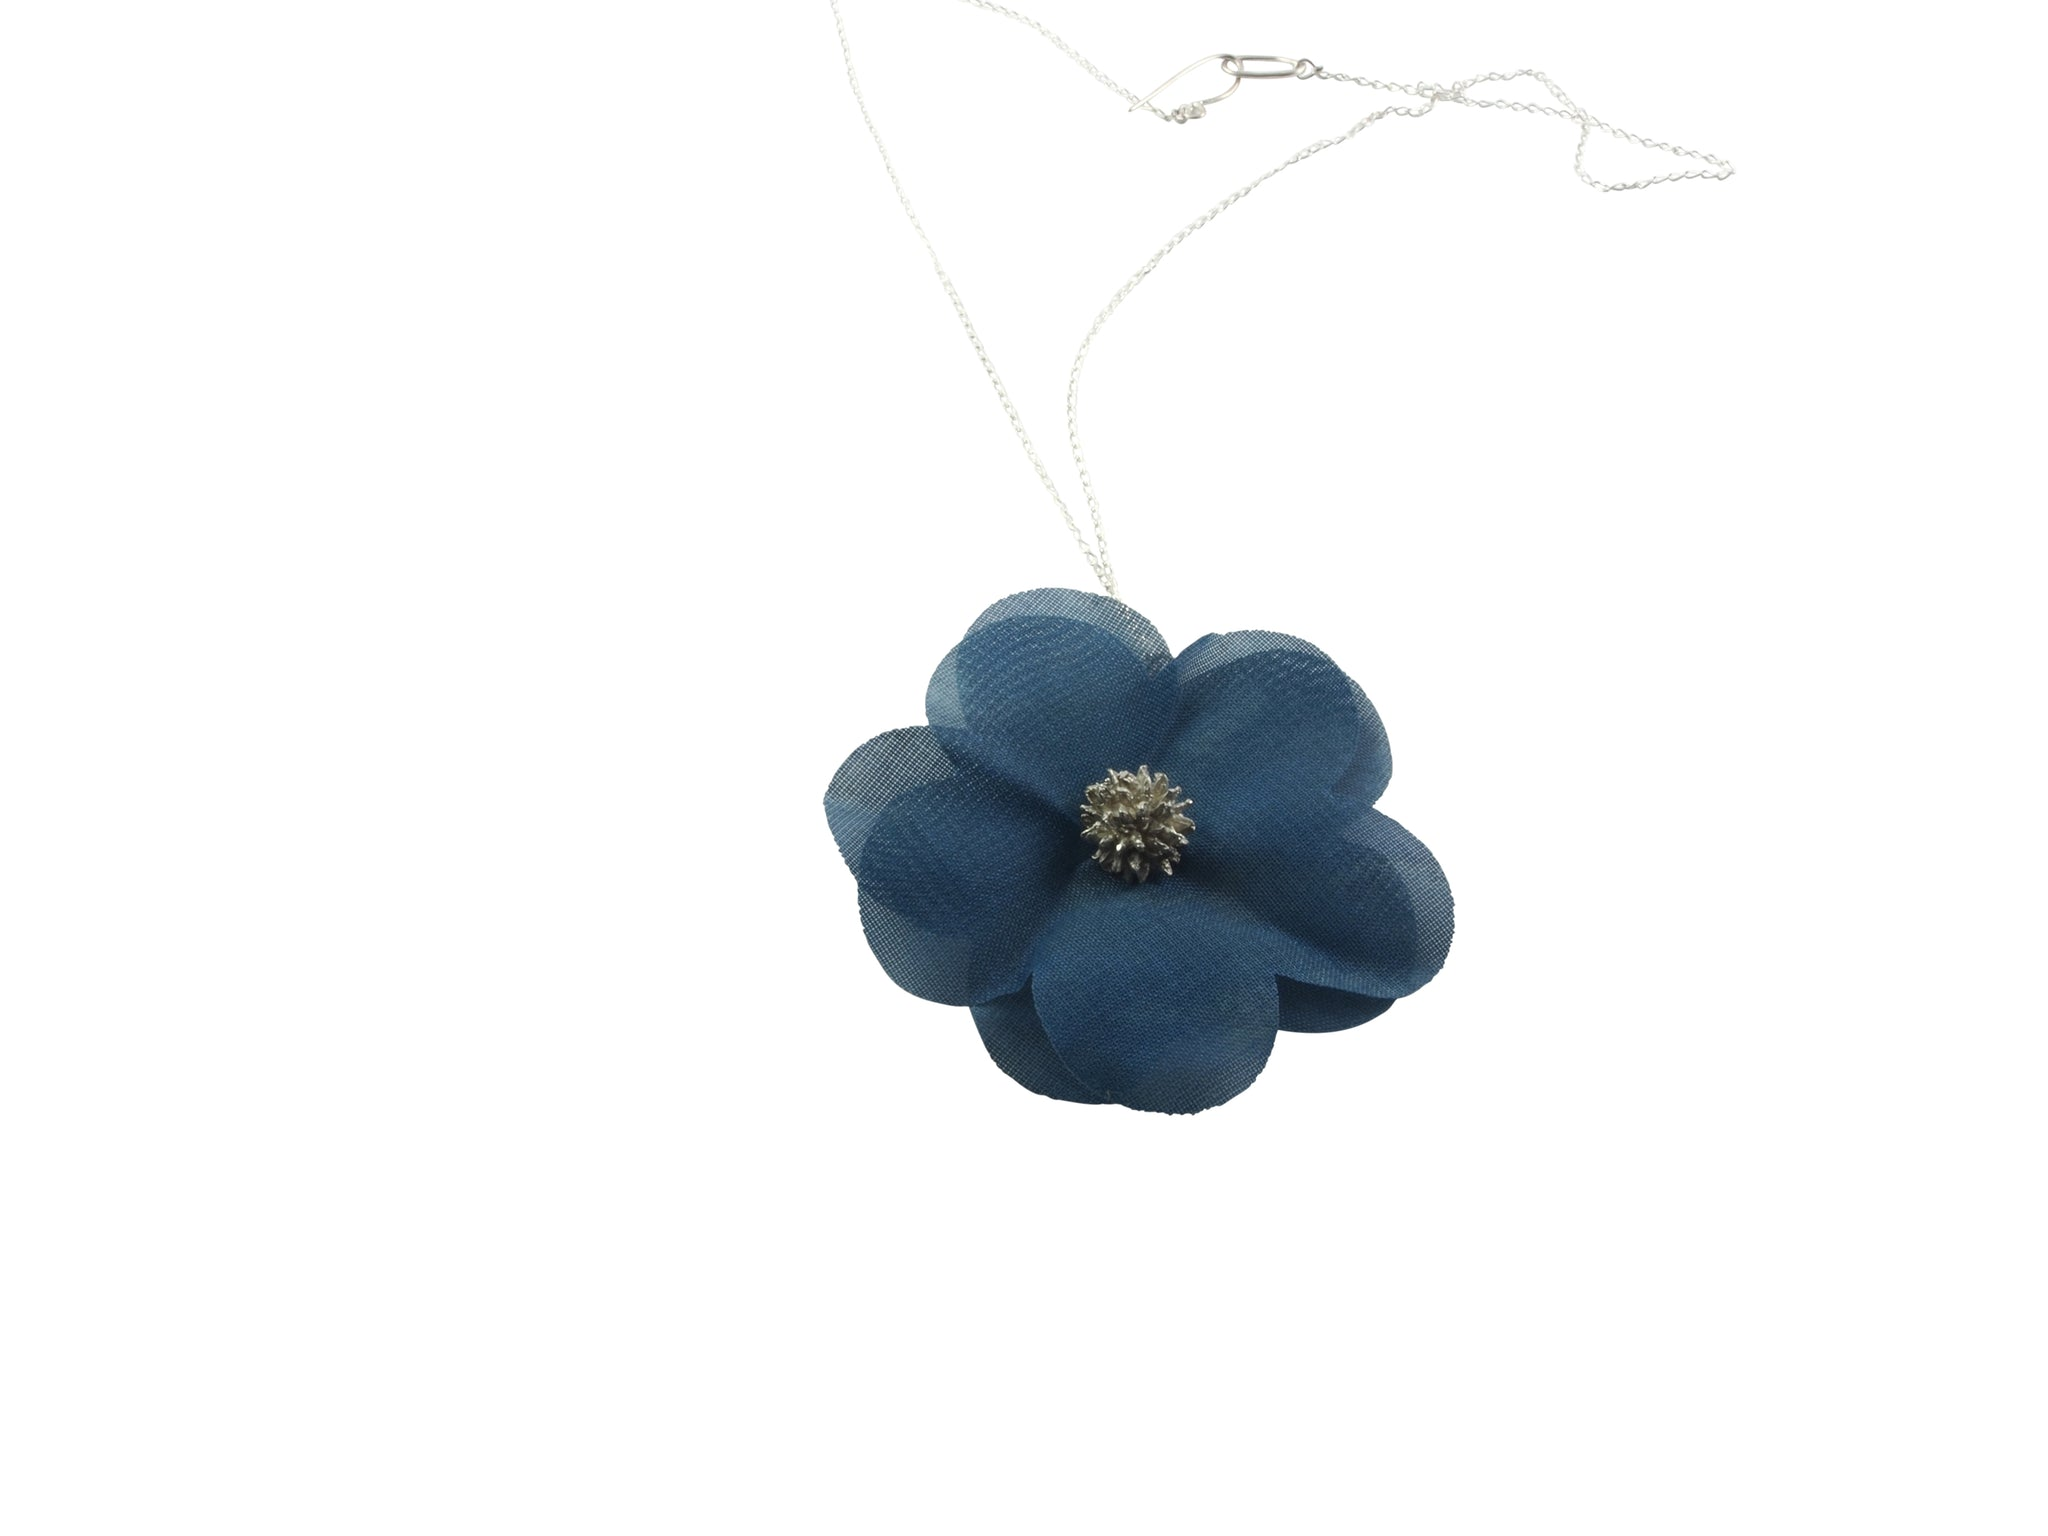 winter rose necklace - Japanese lacquer on fabric, sterling silver